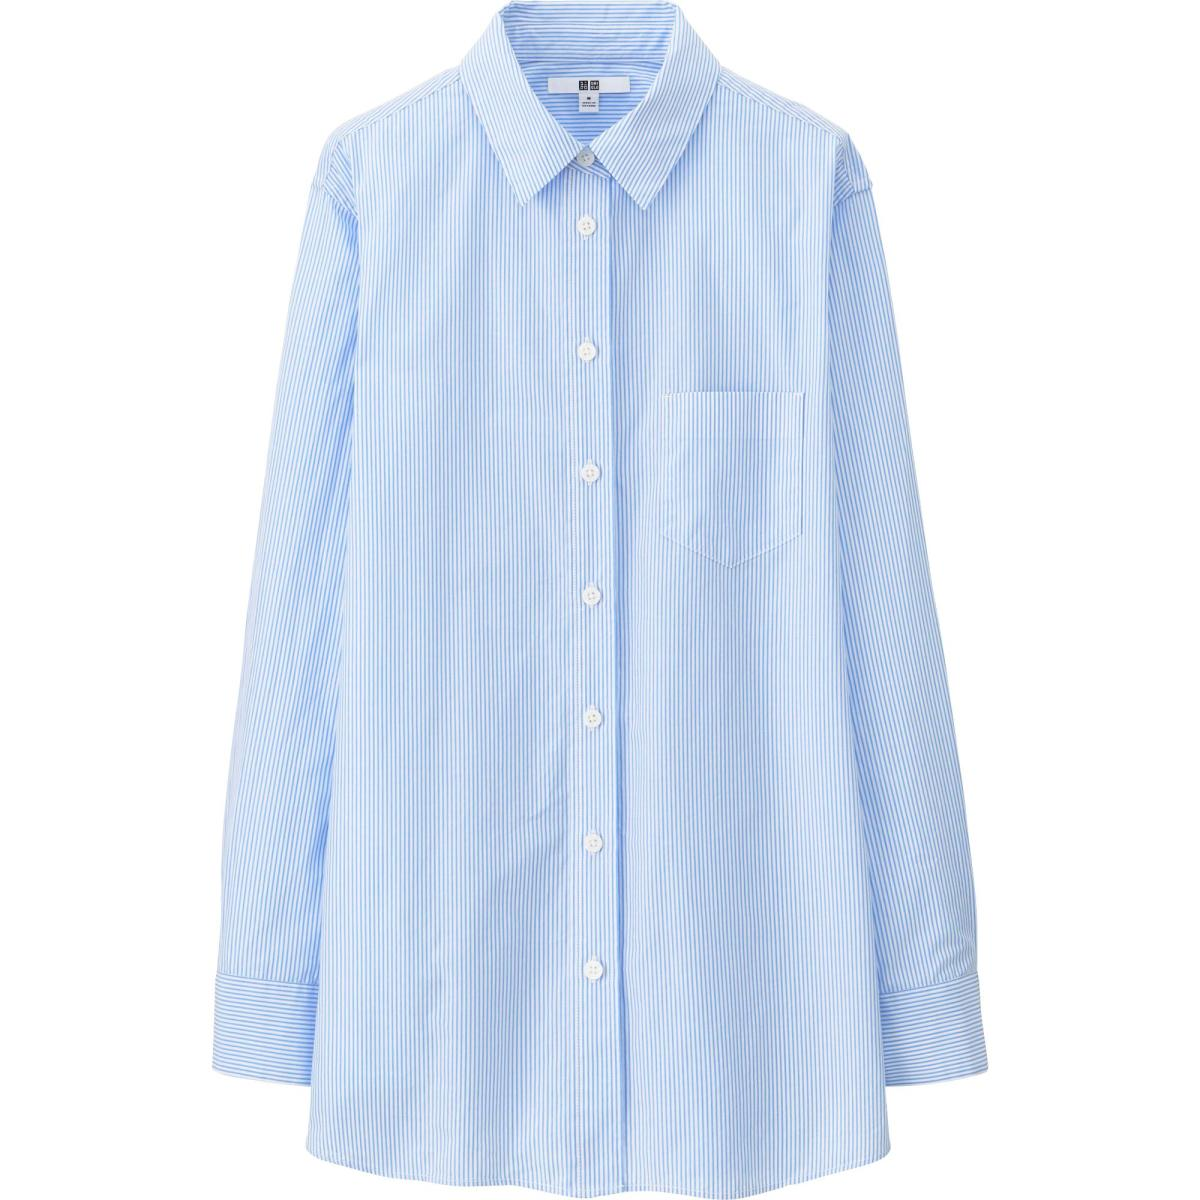 Uniqlo extra fine cotton long sleeve shirt, $29.90, available at Uniqlo.